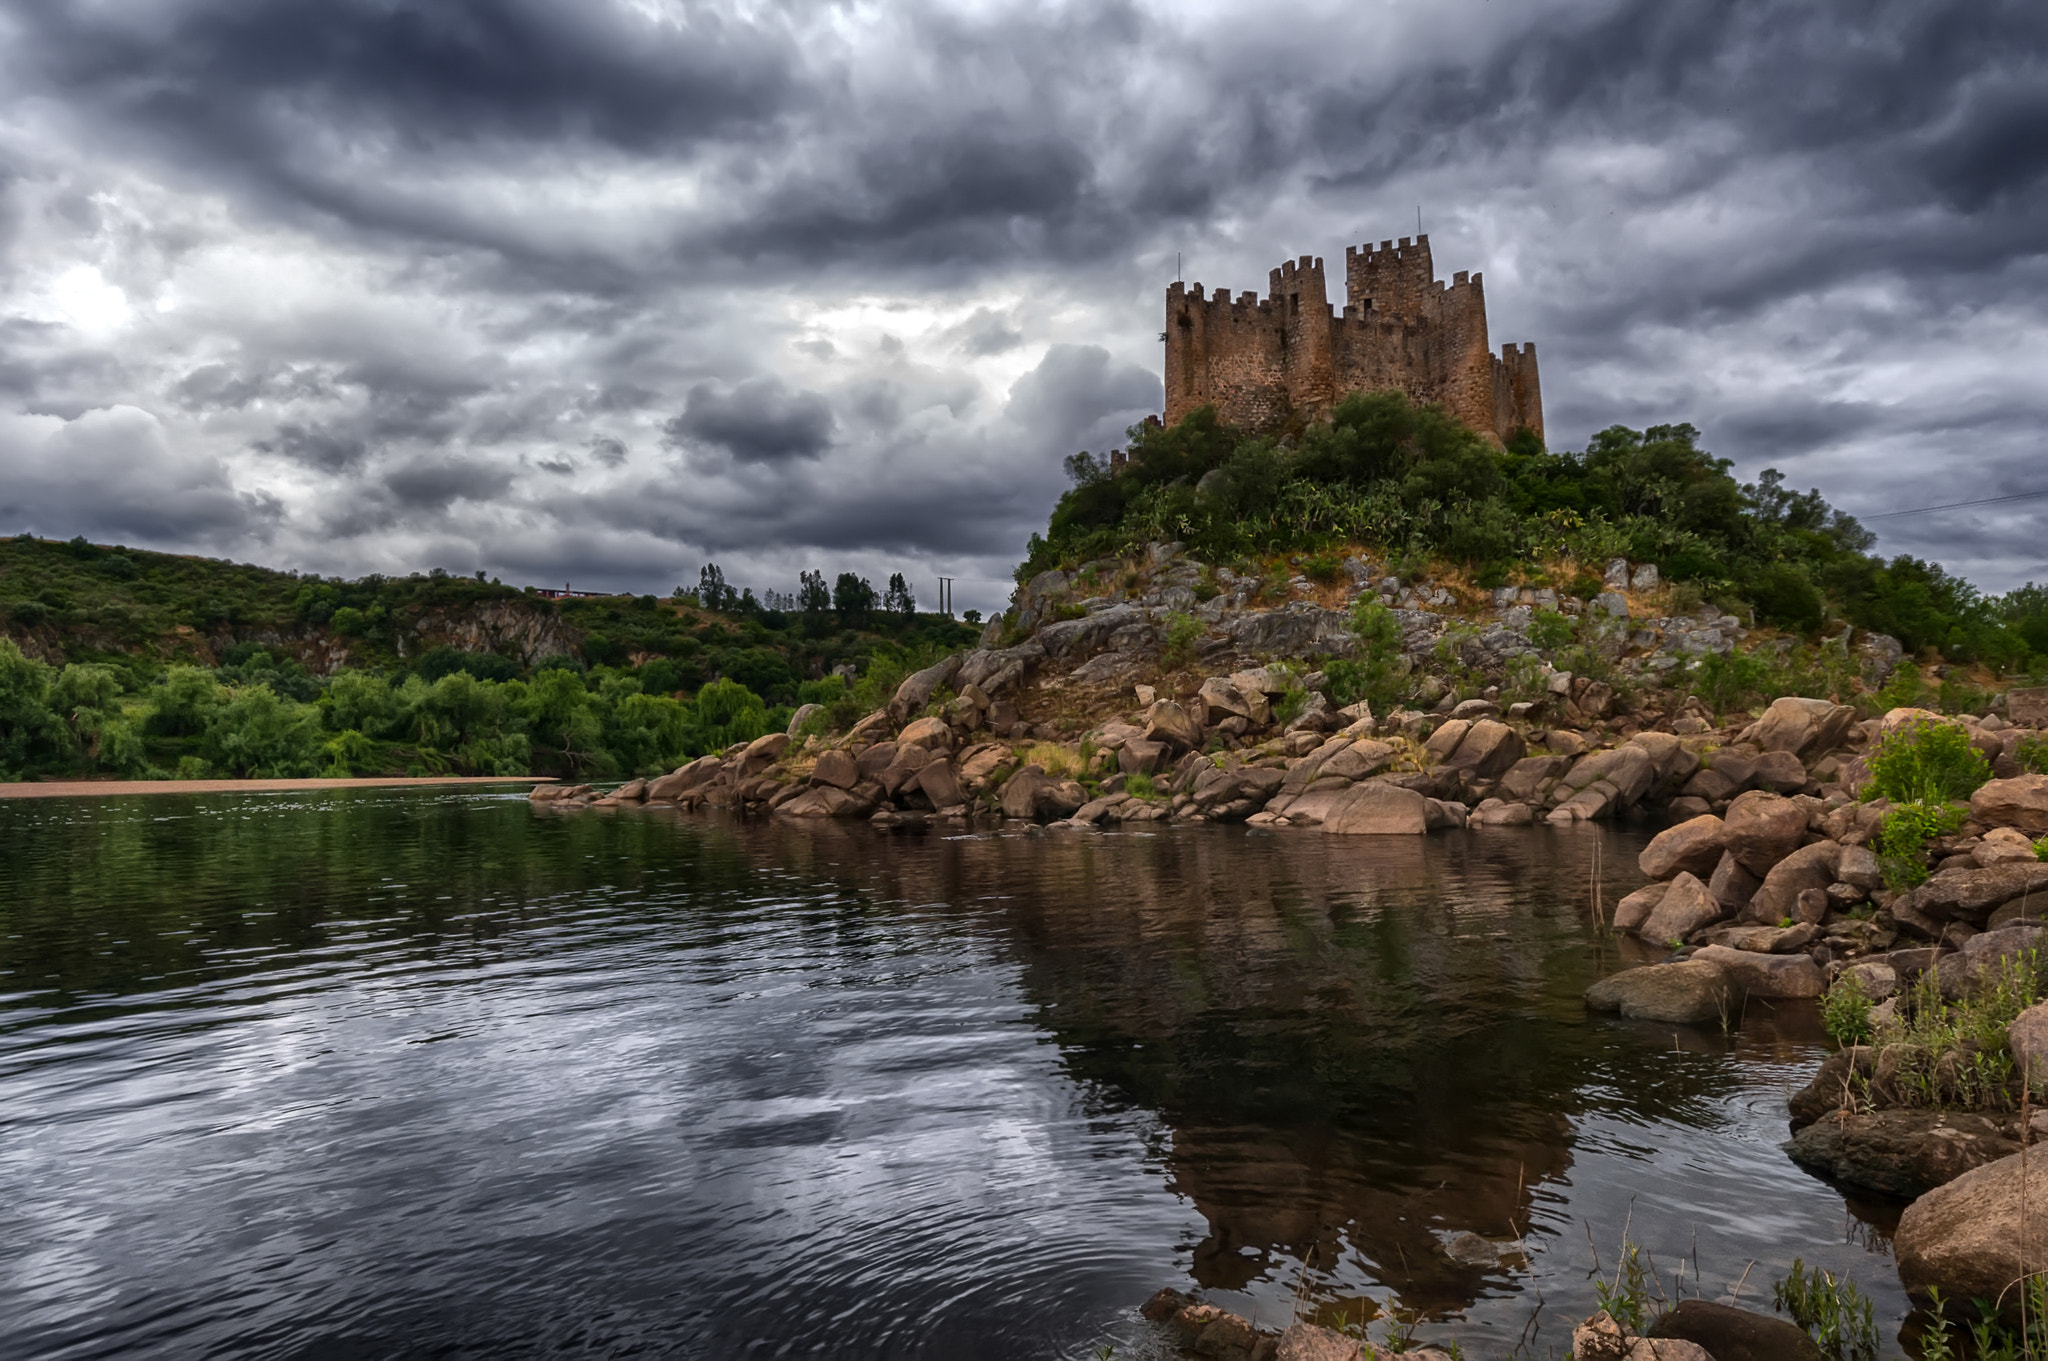 Photograph Castelo de Almourol by Jorge Orfão on 500px